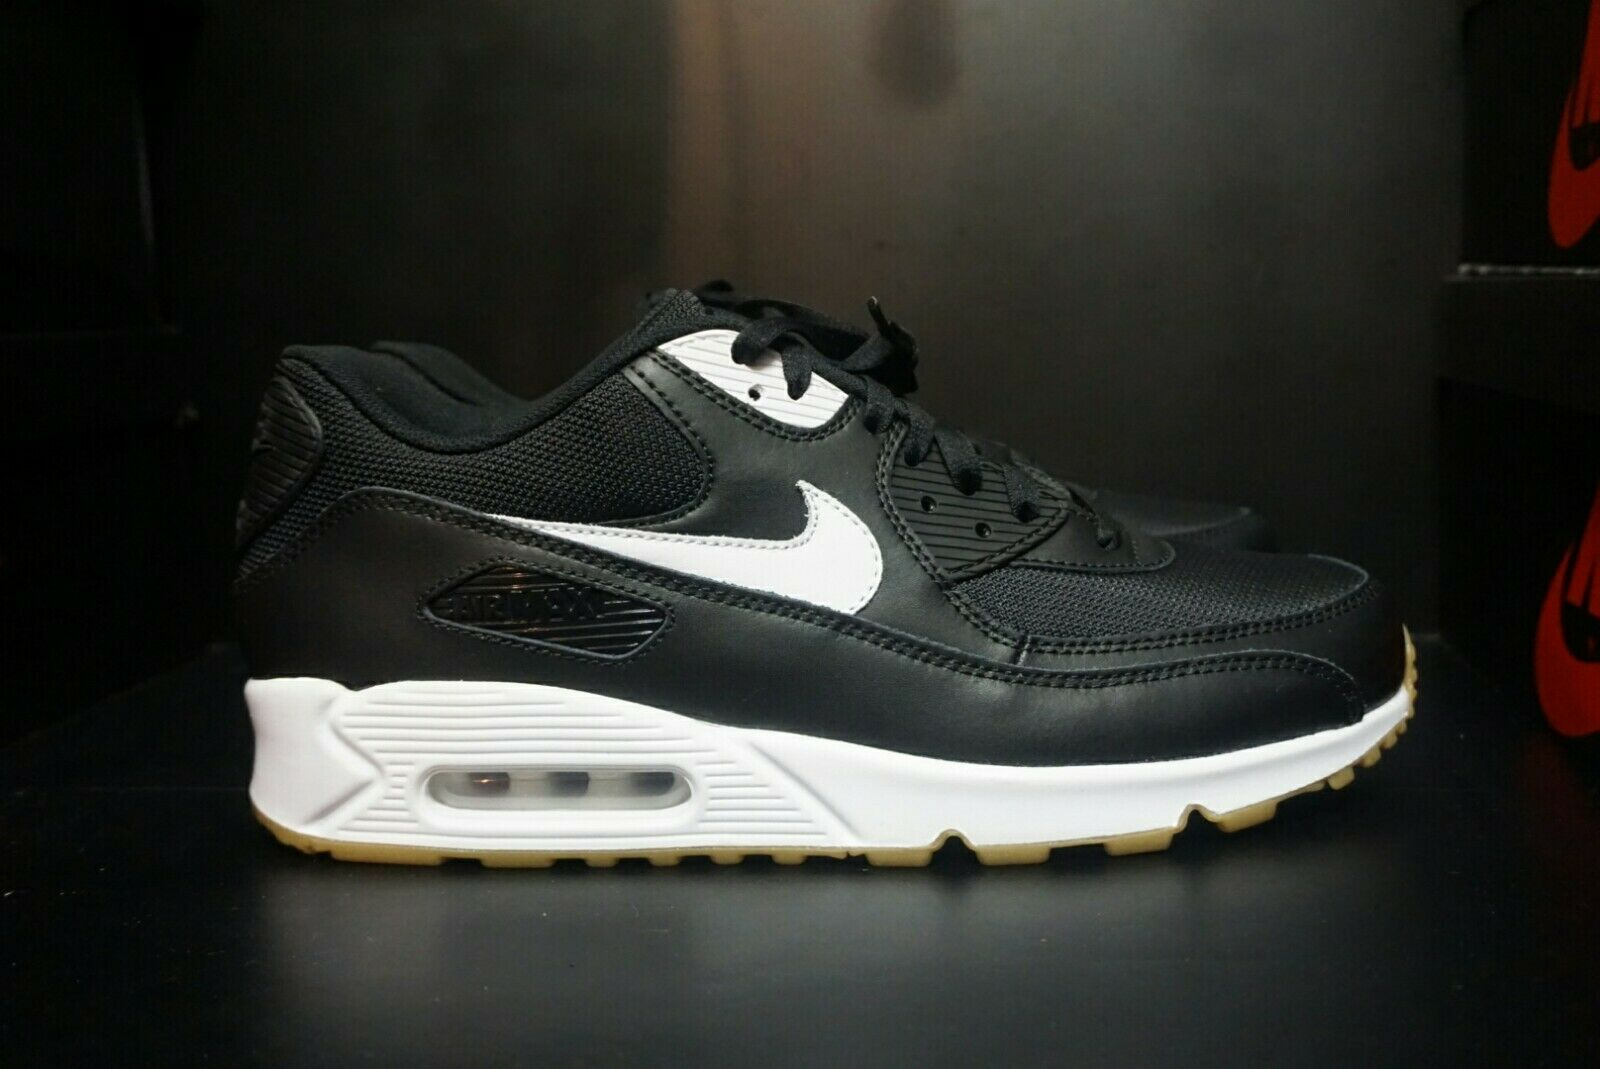 NIKE AIR MAX 90 I.D  PREMIUM LEATHER  MENS SHOE SIZE 11.5 NEW WITHOUT BOX